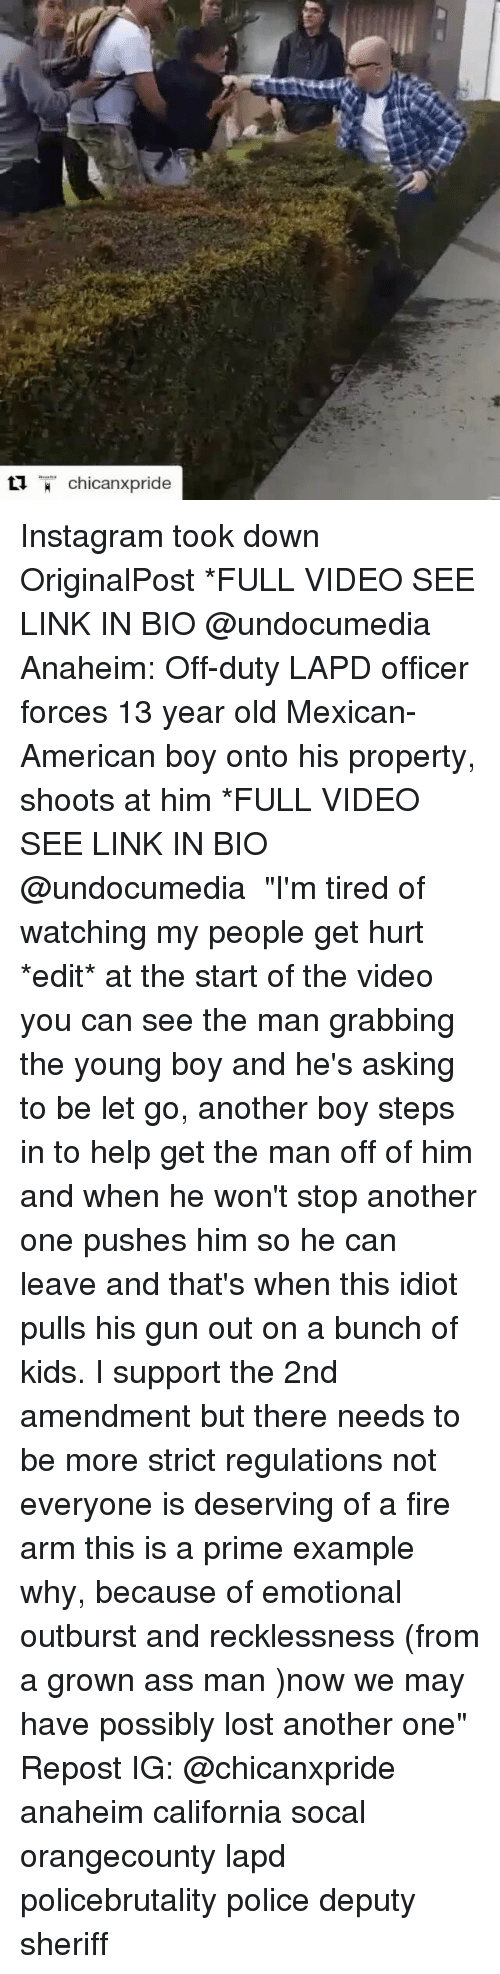 """amends: chicanxpride Instagram took down OriginalPost *FULL VIDEO SEE LINK IN BIO @undocumedia Anaheim: Off-duty LAPD officer forces 13 year old Mexican-American boy onto his property, shoots at him *FULL VIDEO SEE LINK IN BIO @undocumedia ・・・ """"I'm tired of watching my people get hurt *edit* at the start of the video you can see the man grabbing the young boy and he's asking to be let go, another boy steps in to help get the man off of him and when he won't stop another one pushes him so he can leave and that's when this idiot pulls his gun out on a bunch of kids. I support the 2nd amendment but there needs to be more strict regulations not everyone is deserving of a fire arm this is a prime example why, because of emotional outburst and recklessness (from a grown ass man )now we may have possibly lost another one"""" Repost IG: @chicanxpride anaheim california socal orangecounty lapd policebrutality police deputy sheriff"""